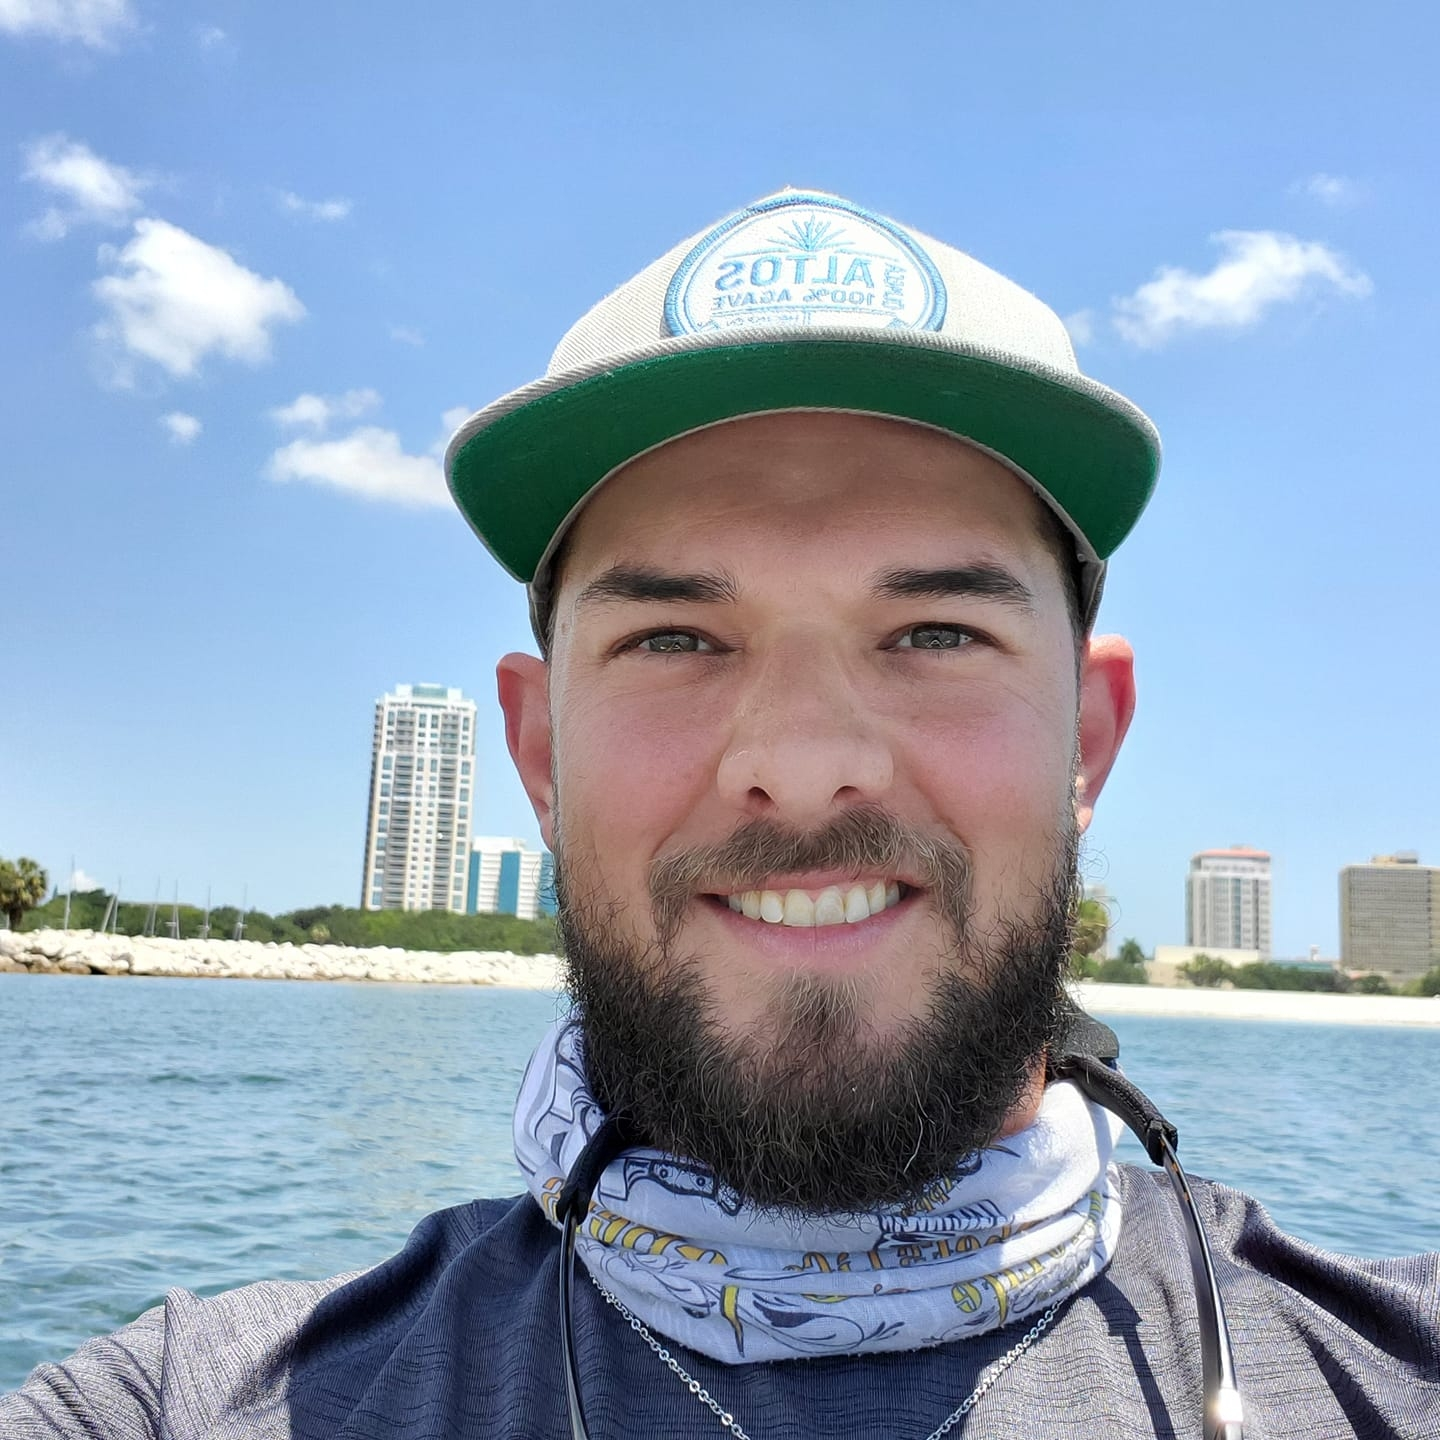 Interview with Chef A.J. Lambden from Kiosk Kitchen – St. Petersburg Foodies Podcast Episode 141